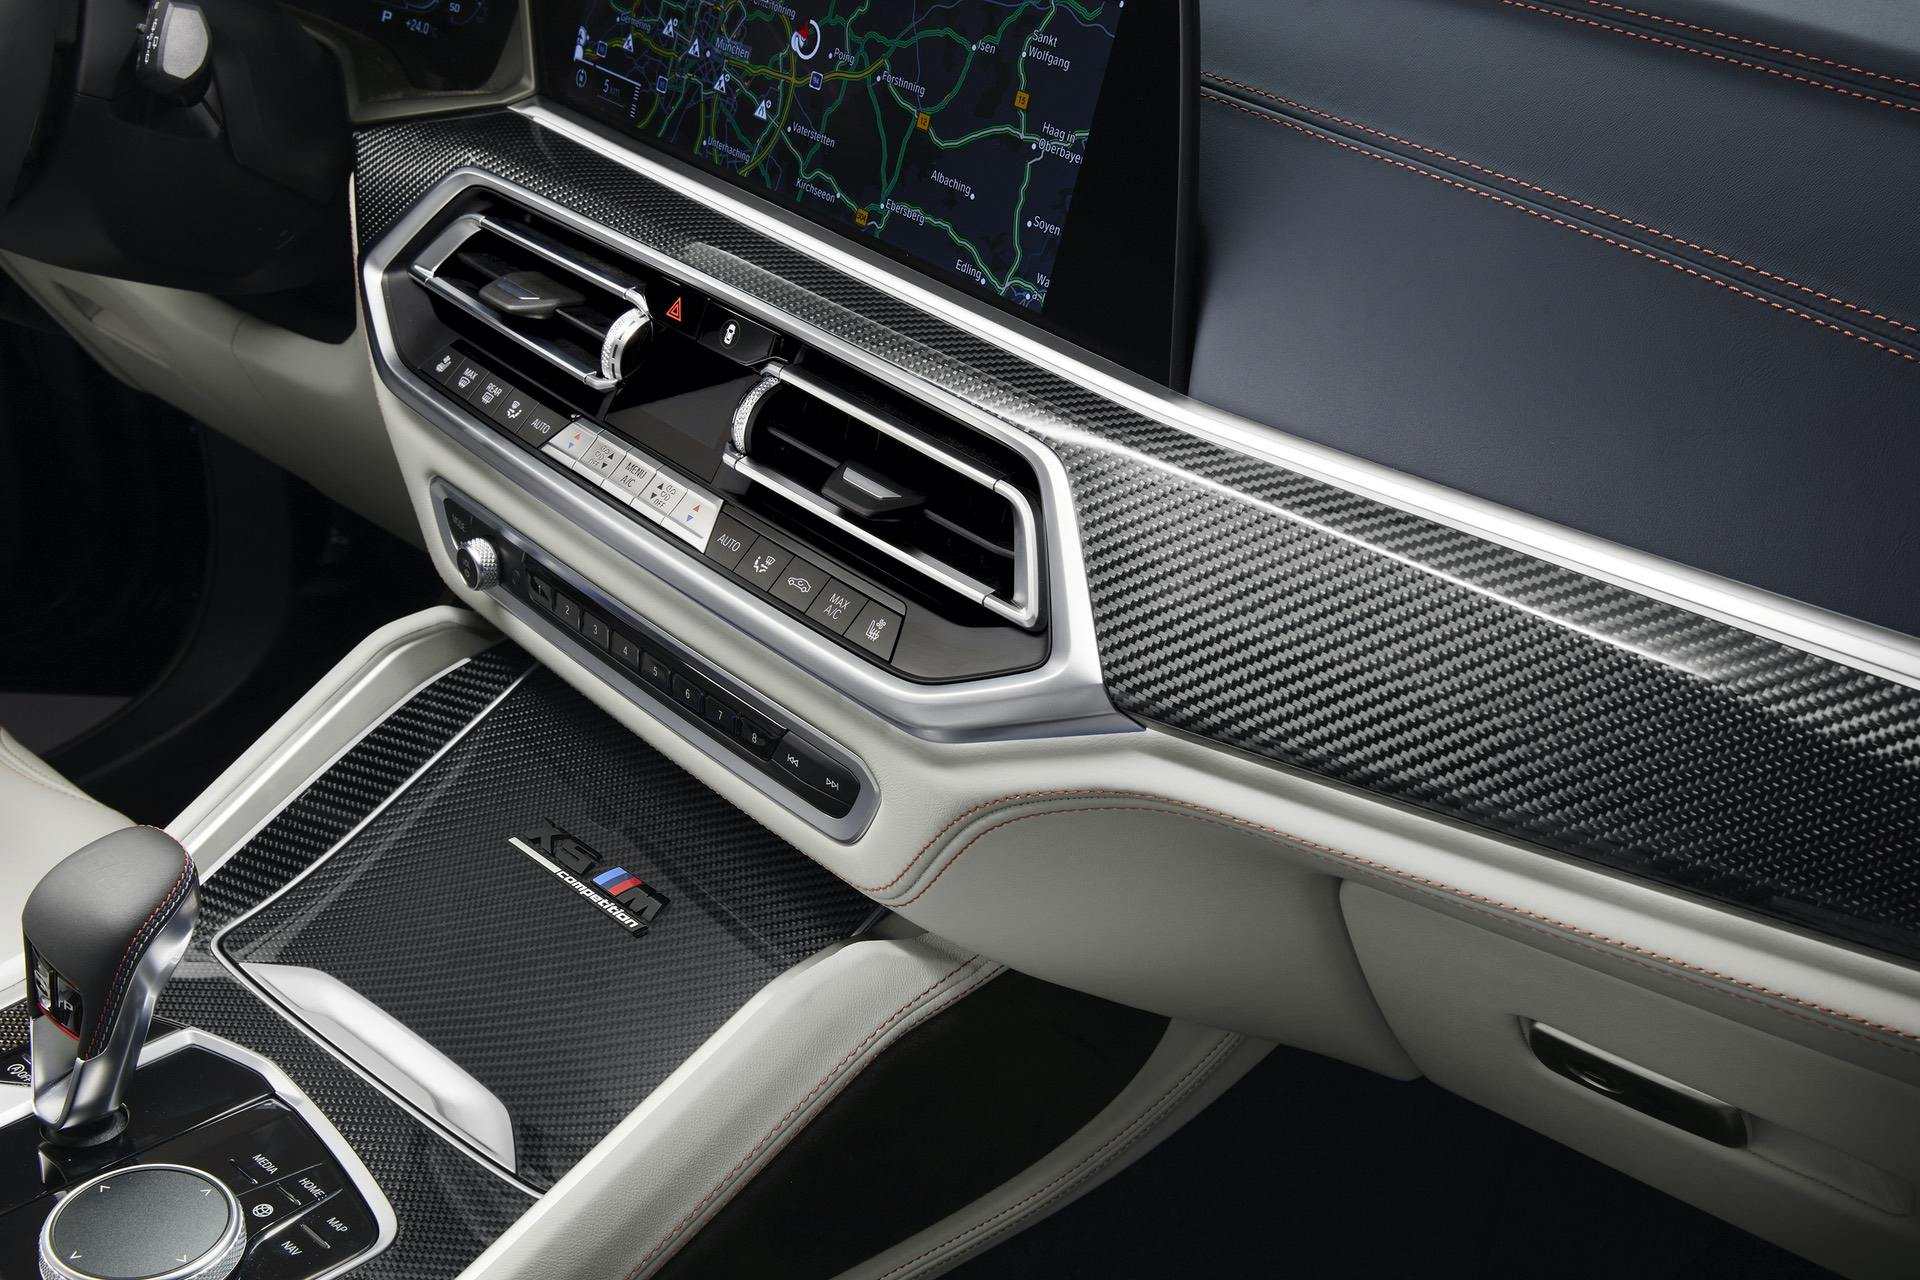 Limited Edition Bmw X5 M Competition And X6 M Competition Now Available